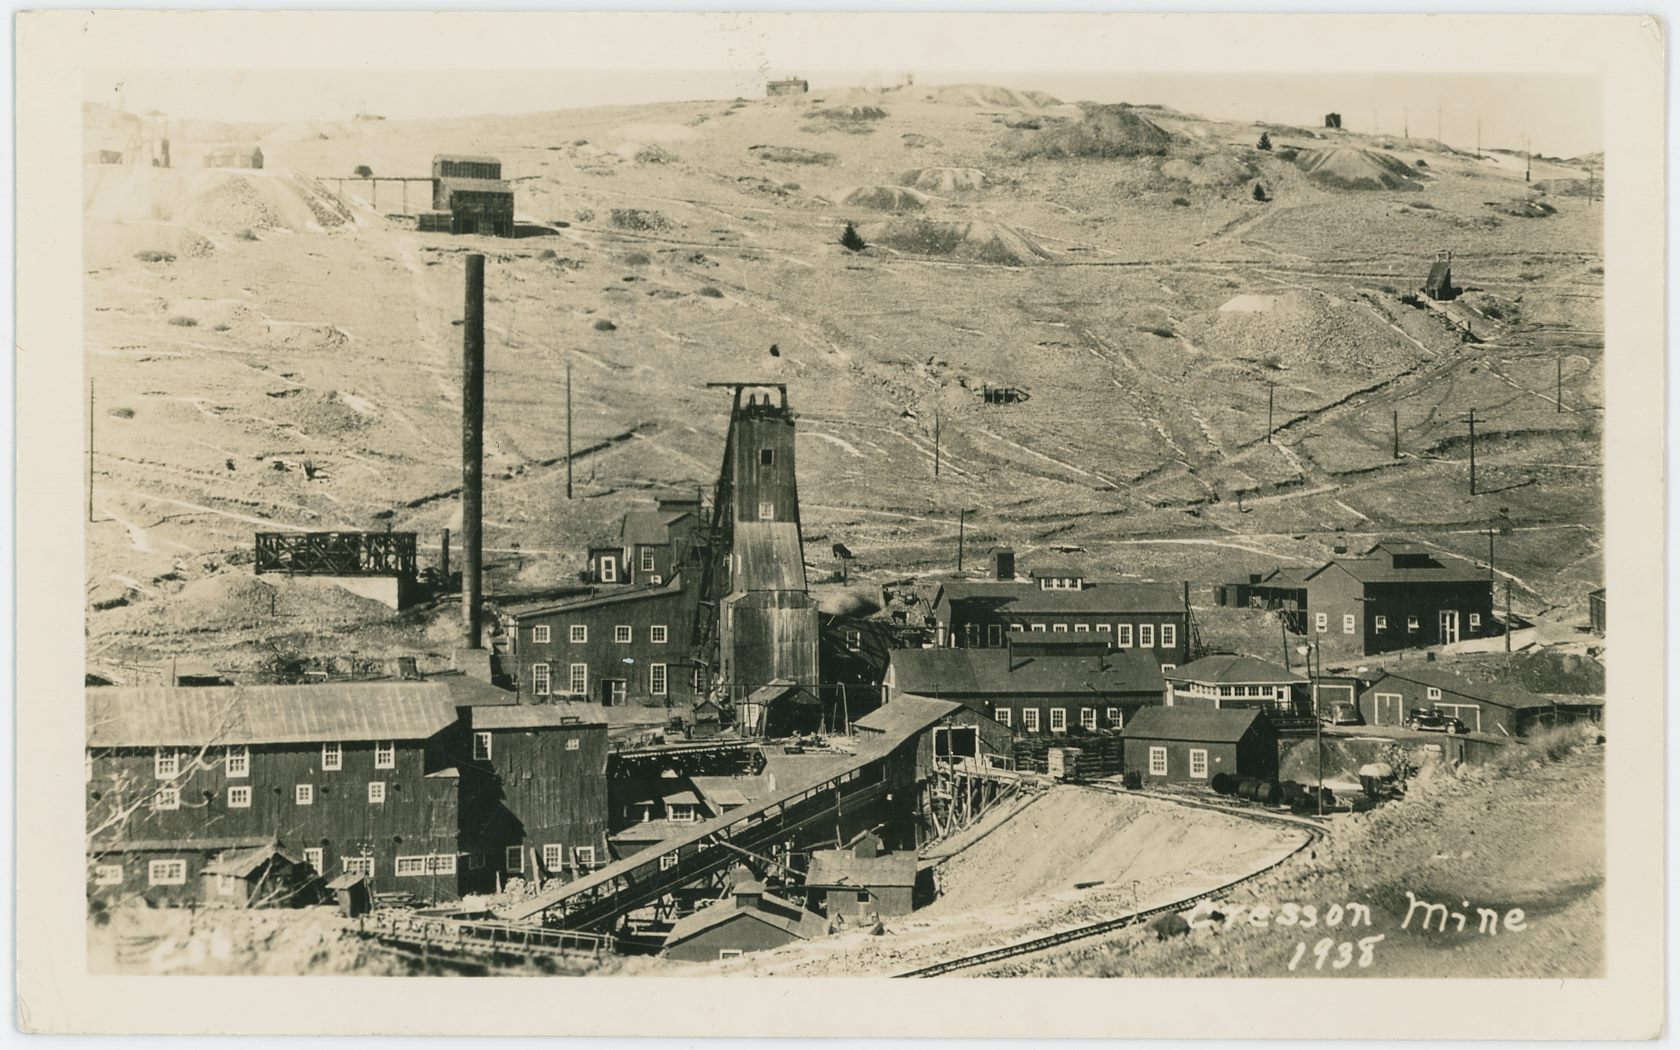 This is the 8th postcard I've seen (as of July 21, 2018) using the base image this is from, this is one of those editions where the text 1938 appears under the words 'Cresson Mine' in lower right. Raven Hill is in the background and sorry, no, I've yet to figure out what mine has that Ore-House seen near upper left, seen just above top of the Cresson Smokestack.